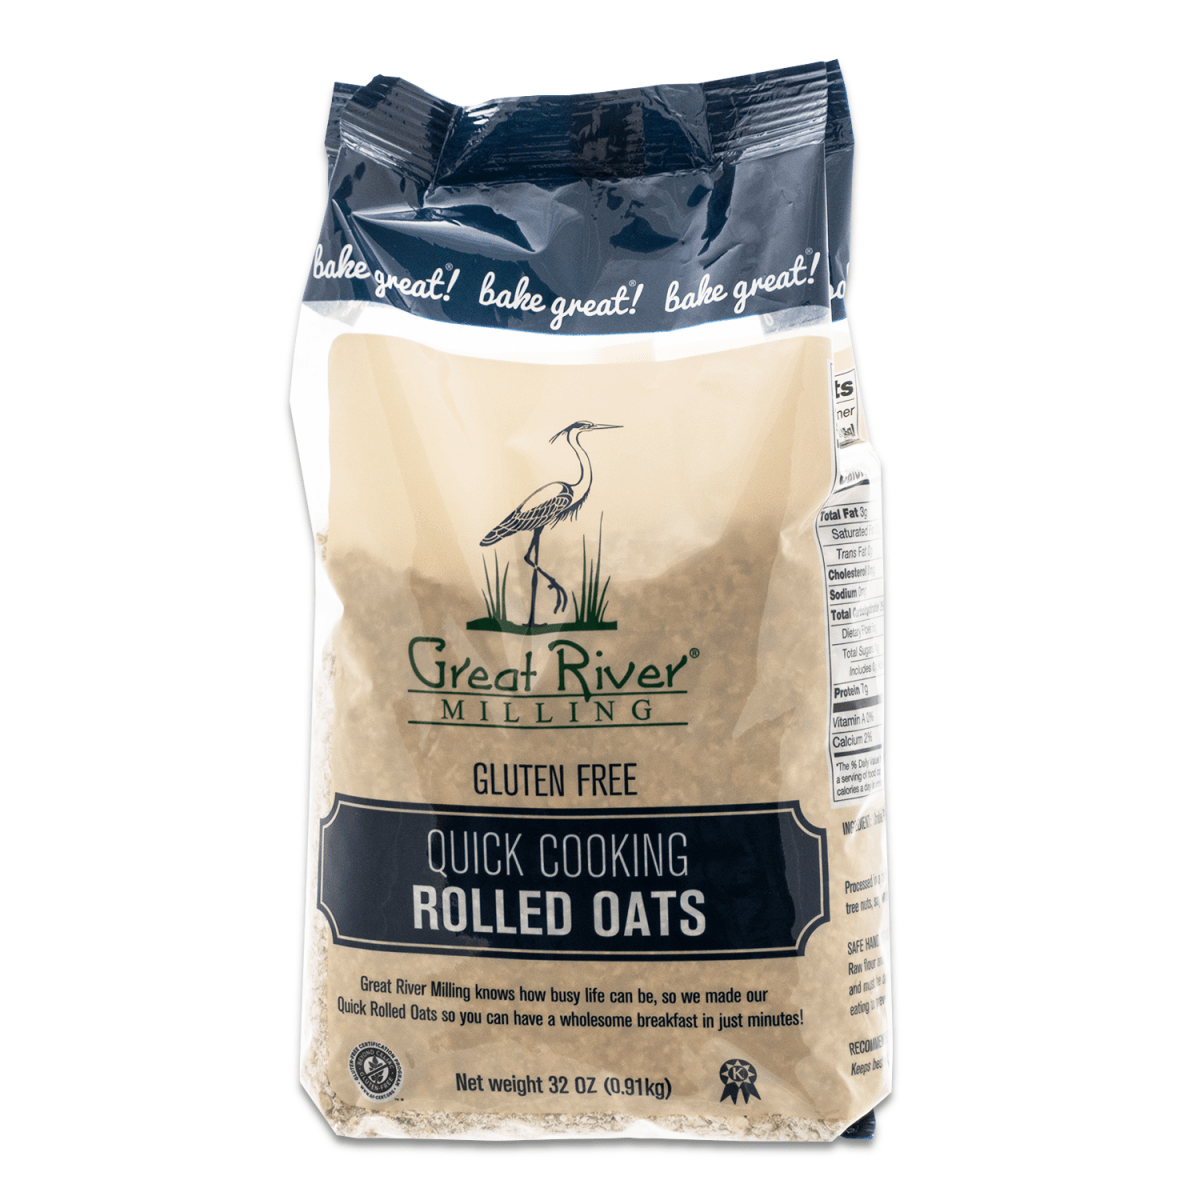 Great River Milling, GF, Quick Cooking Rolled Oats